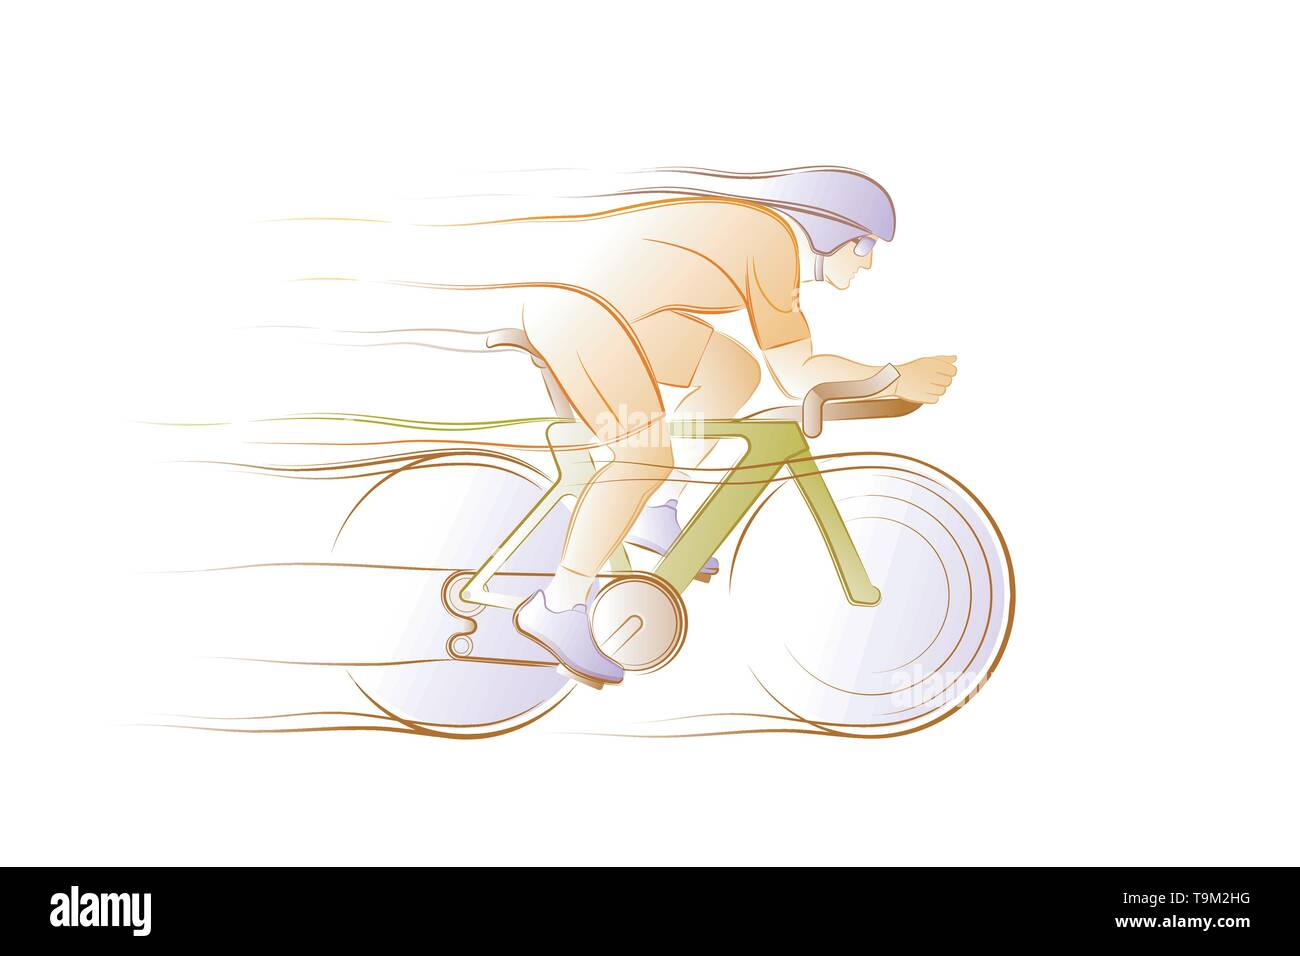 Bicycle Racer - Stock Vector